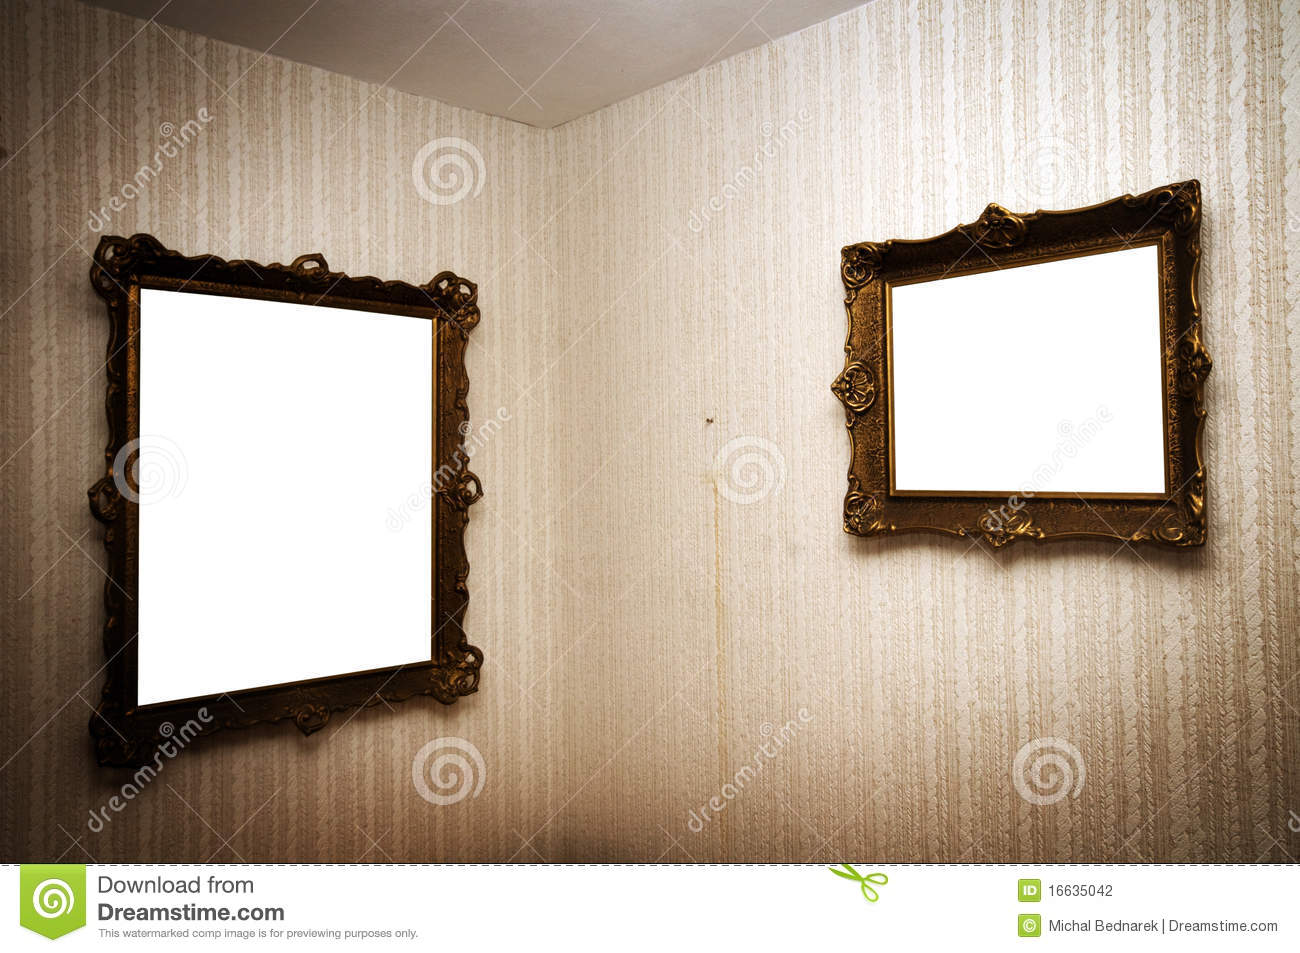 Frames On Wall gallery wall with old frames stock photo - image: 40544473